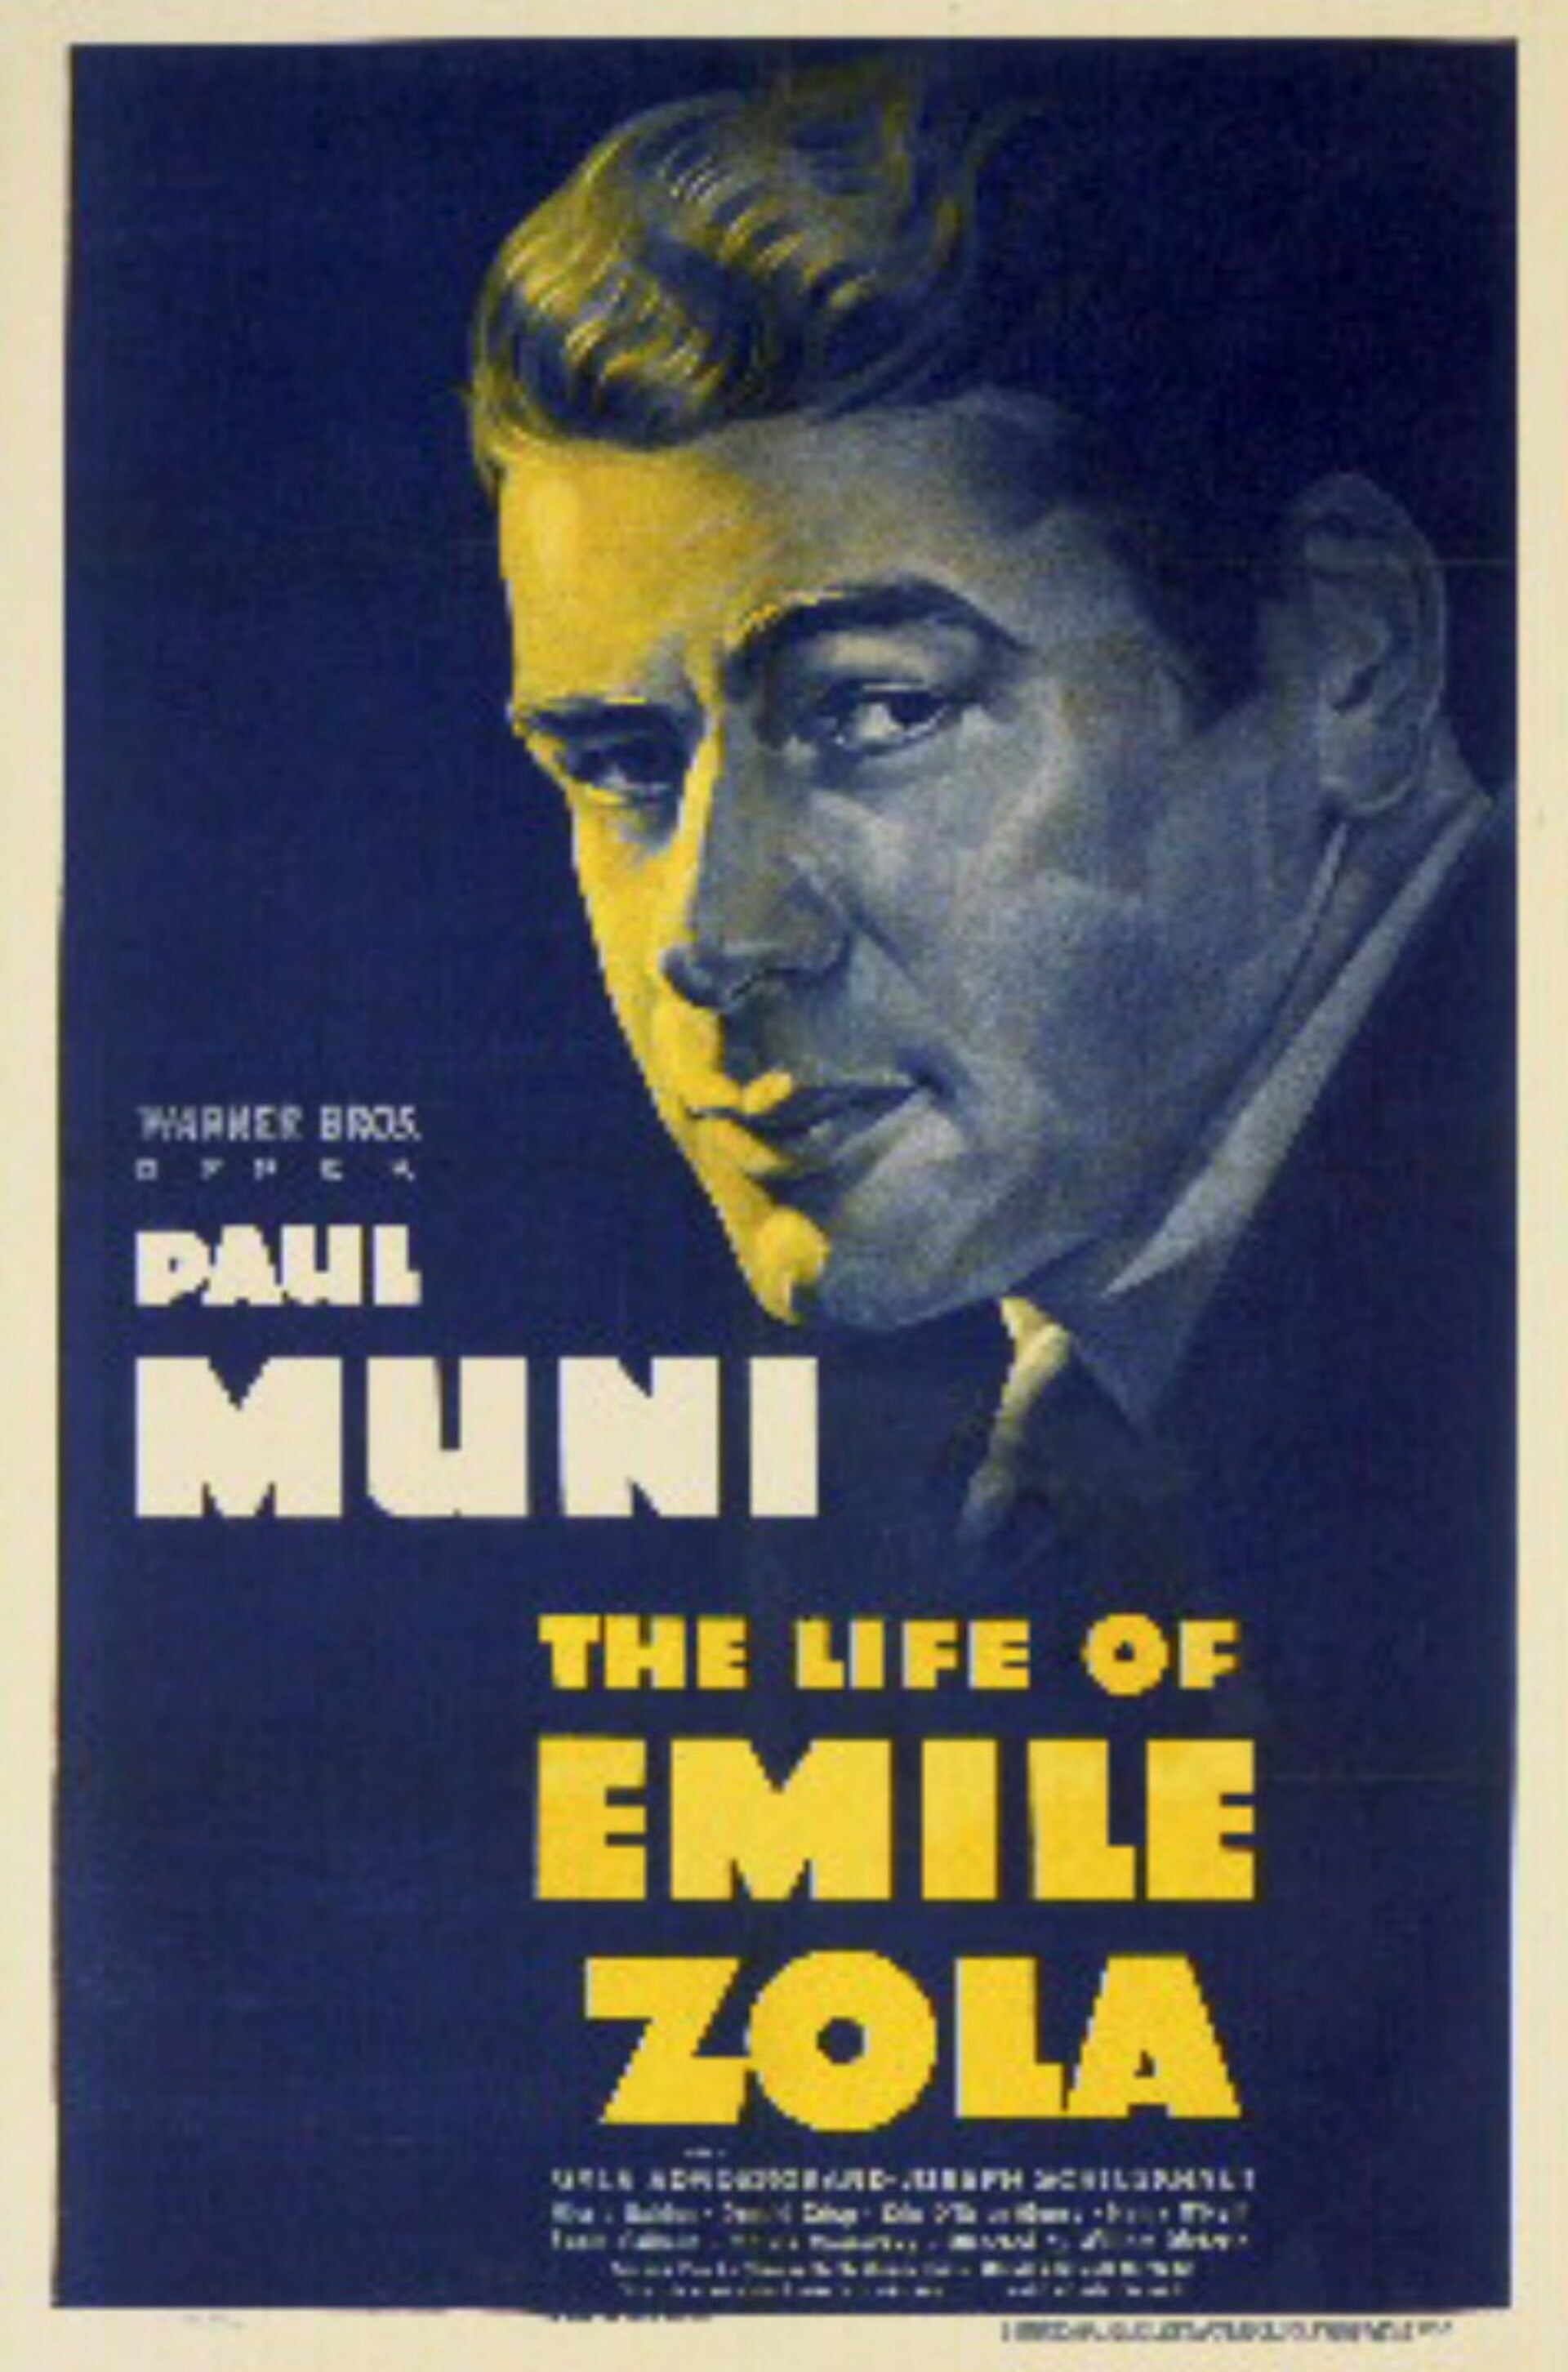 The Life of Emile Zola - Poster 1